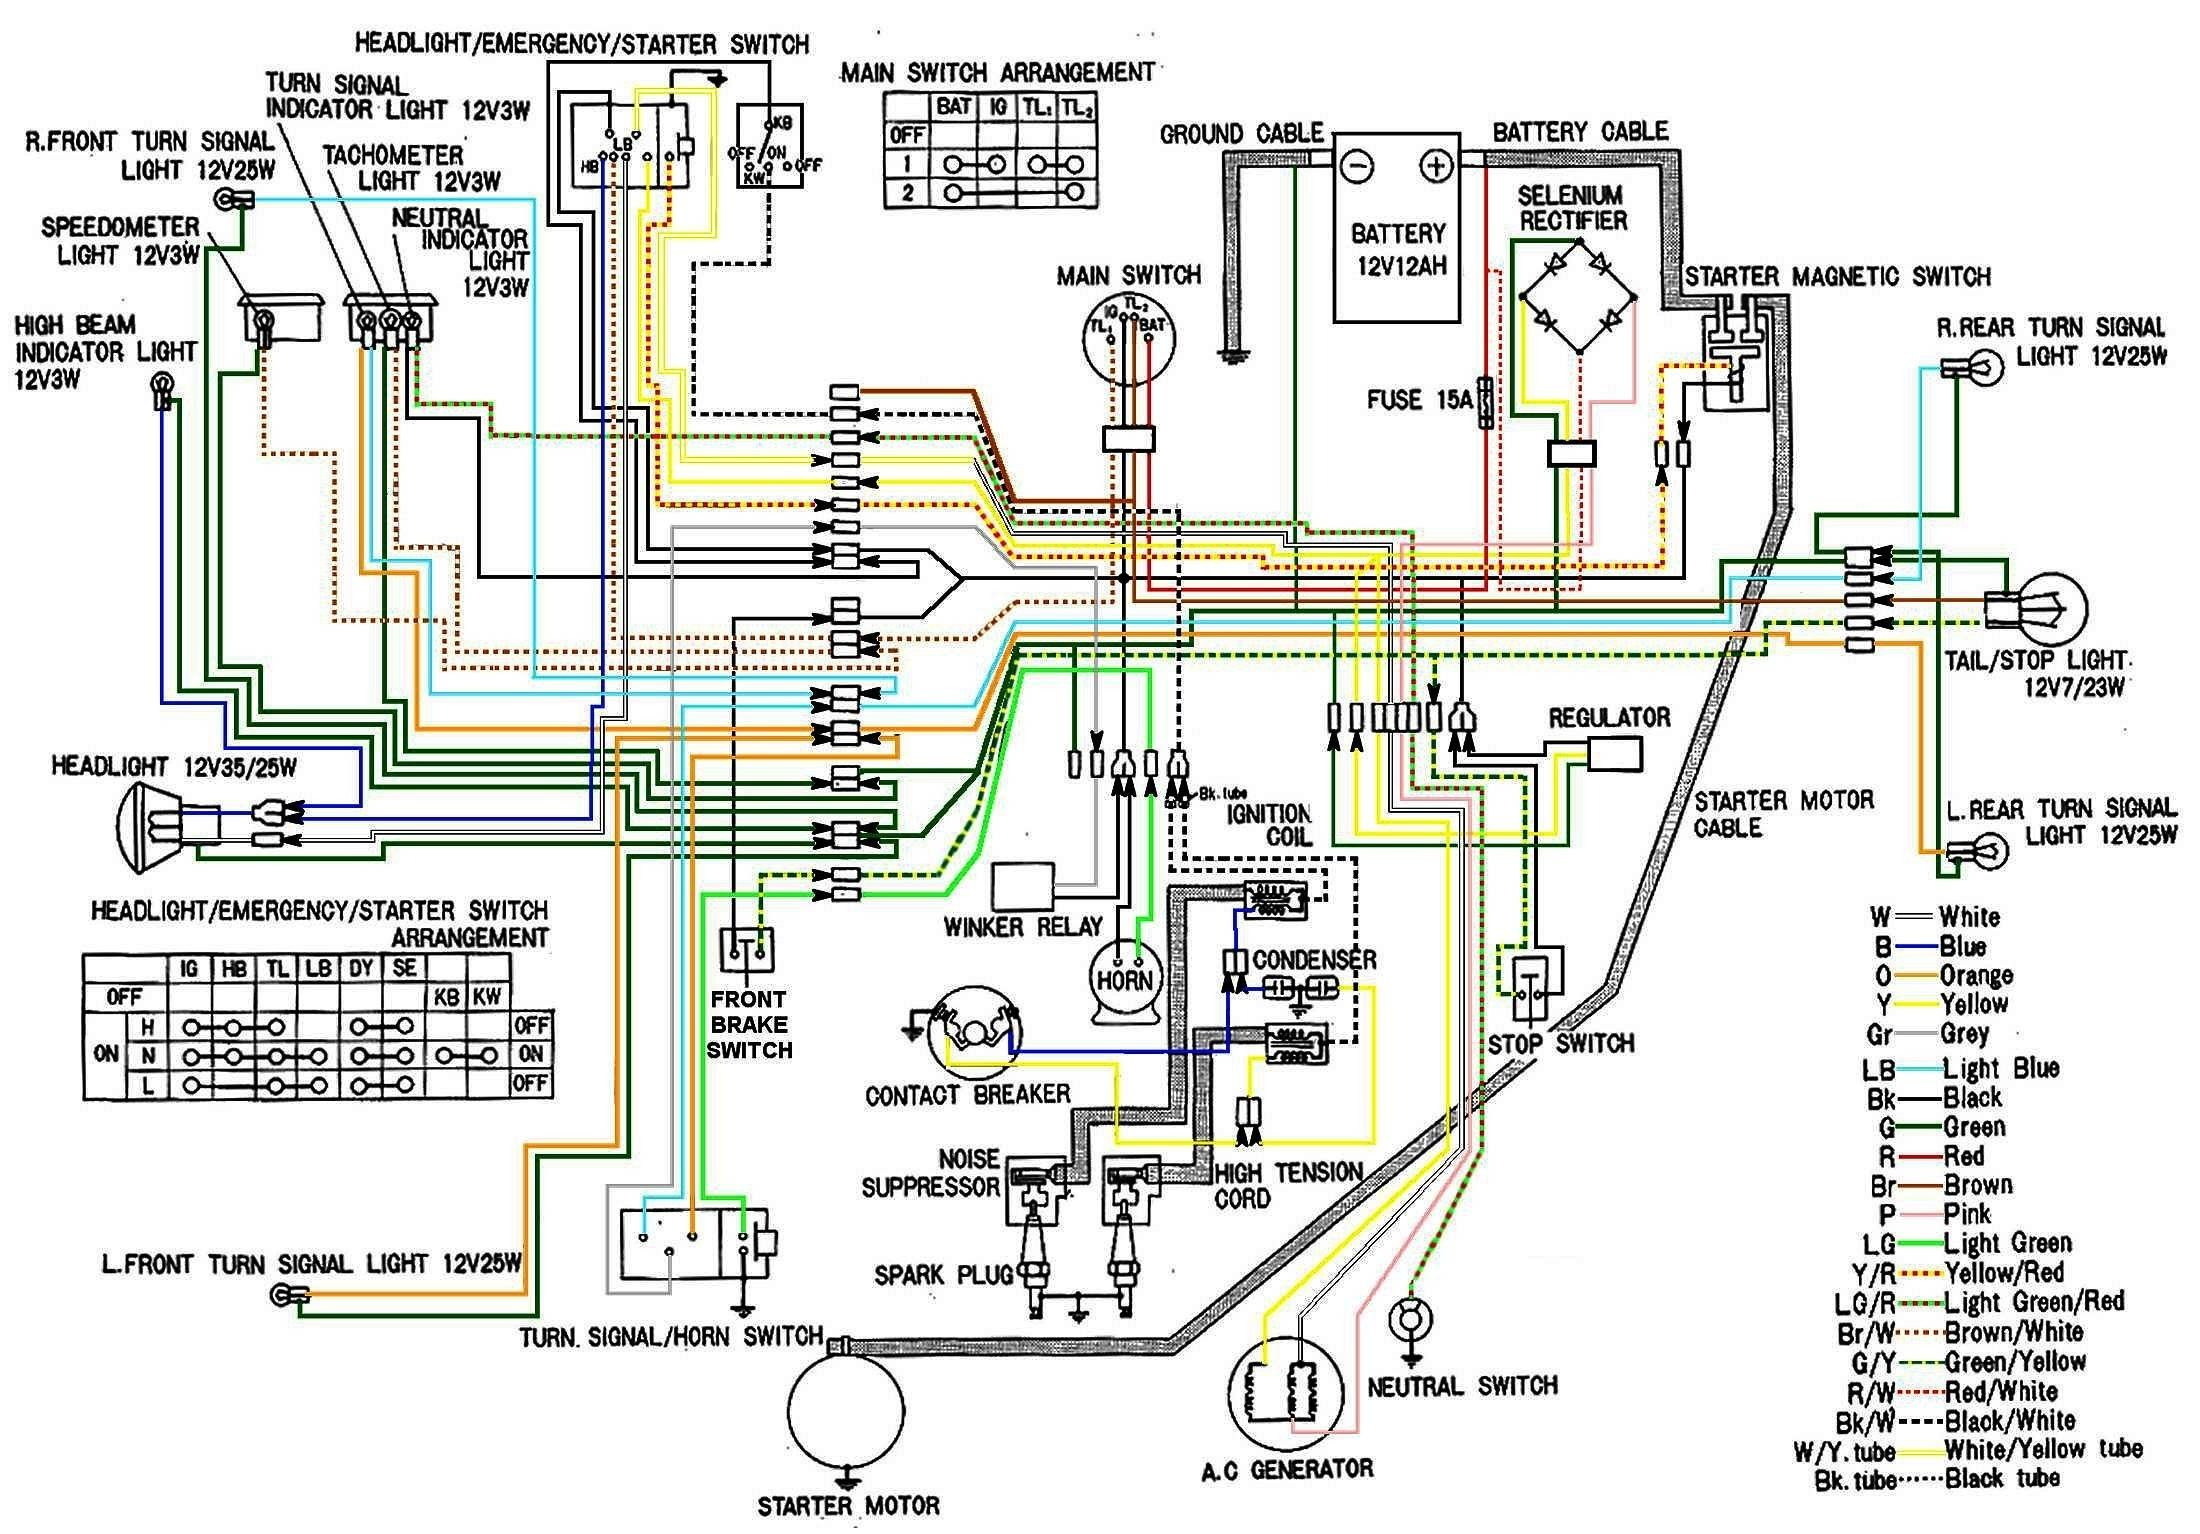 medium resolution of unique wiring diagram for home telephone diagram diagramsample diagramtemplate wiringdiagram diagramchart worksheet worksheettemplate